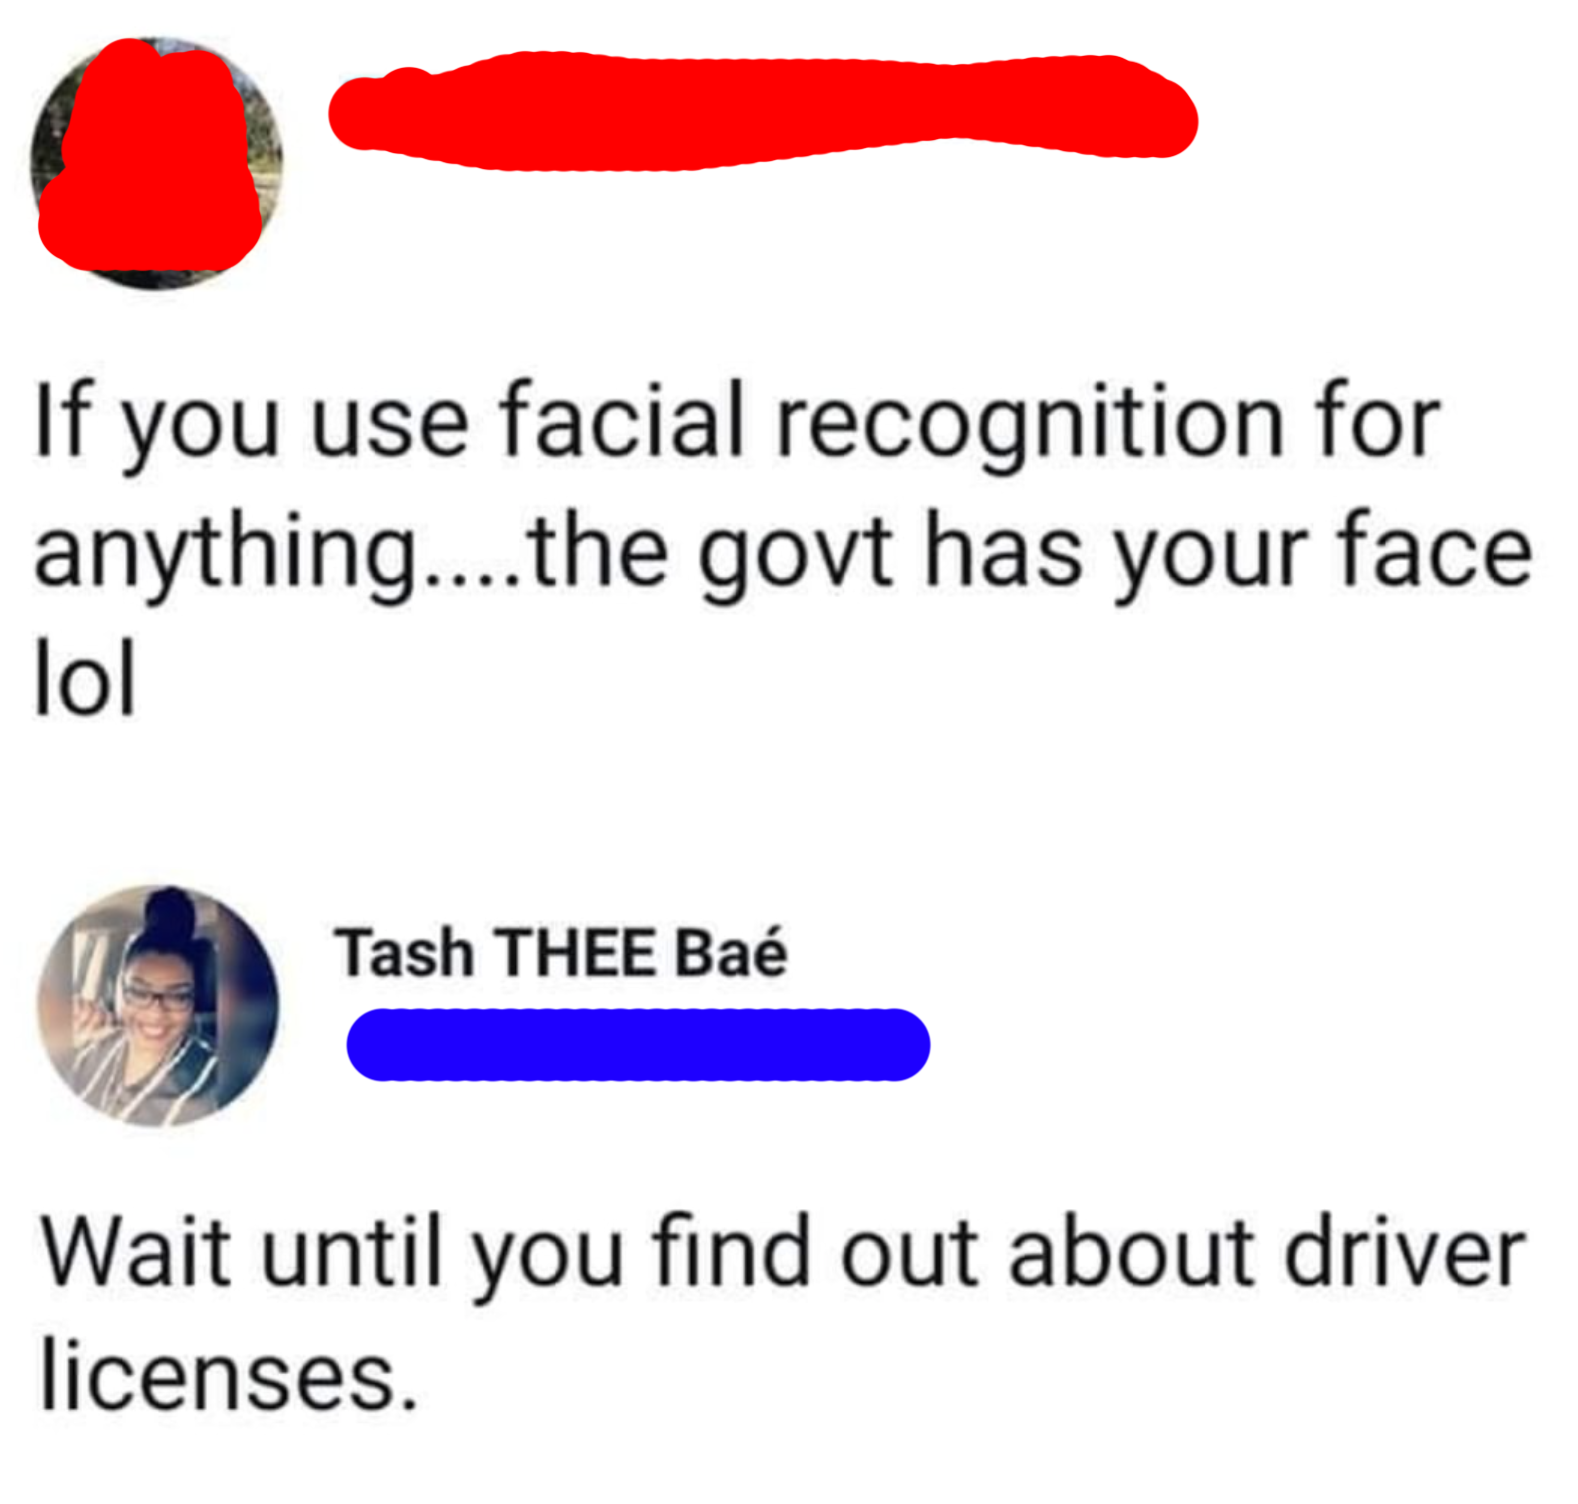 person who says the governement can track your face if you use face id and the other person says have you heard of drivers licenses